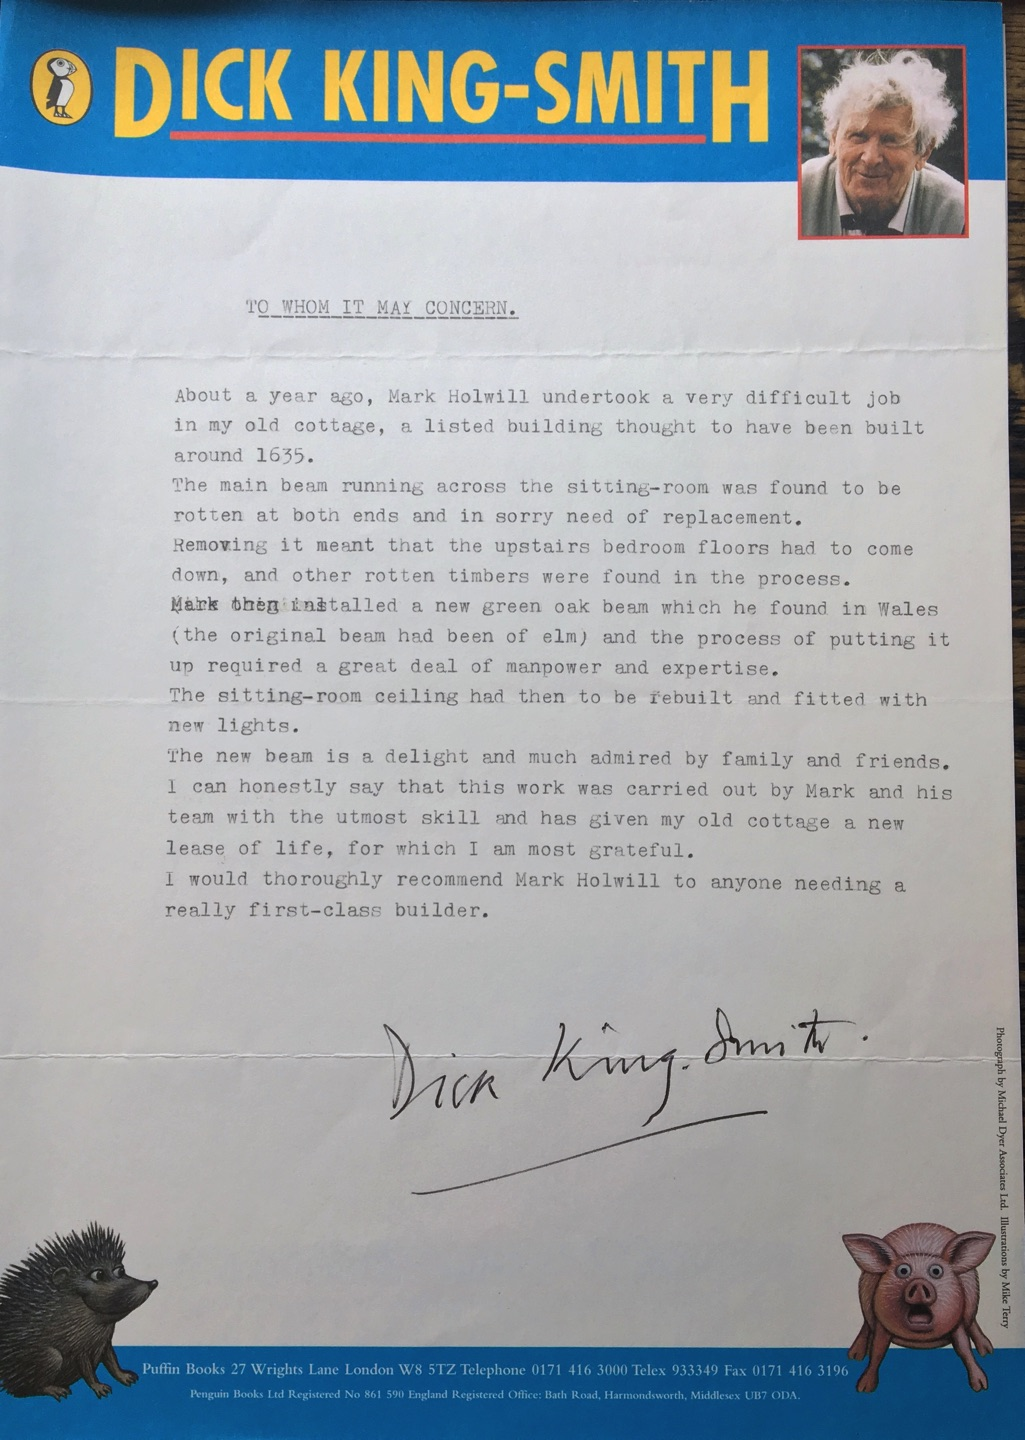 Letter from Dick King-Smith